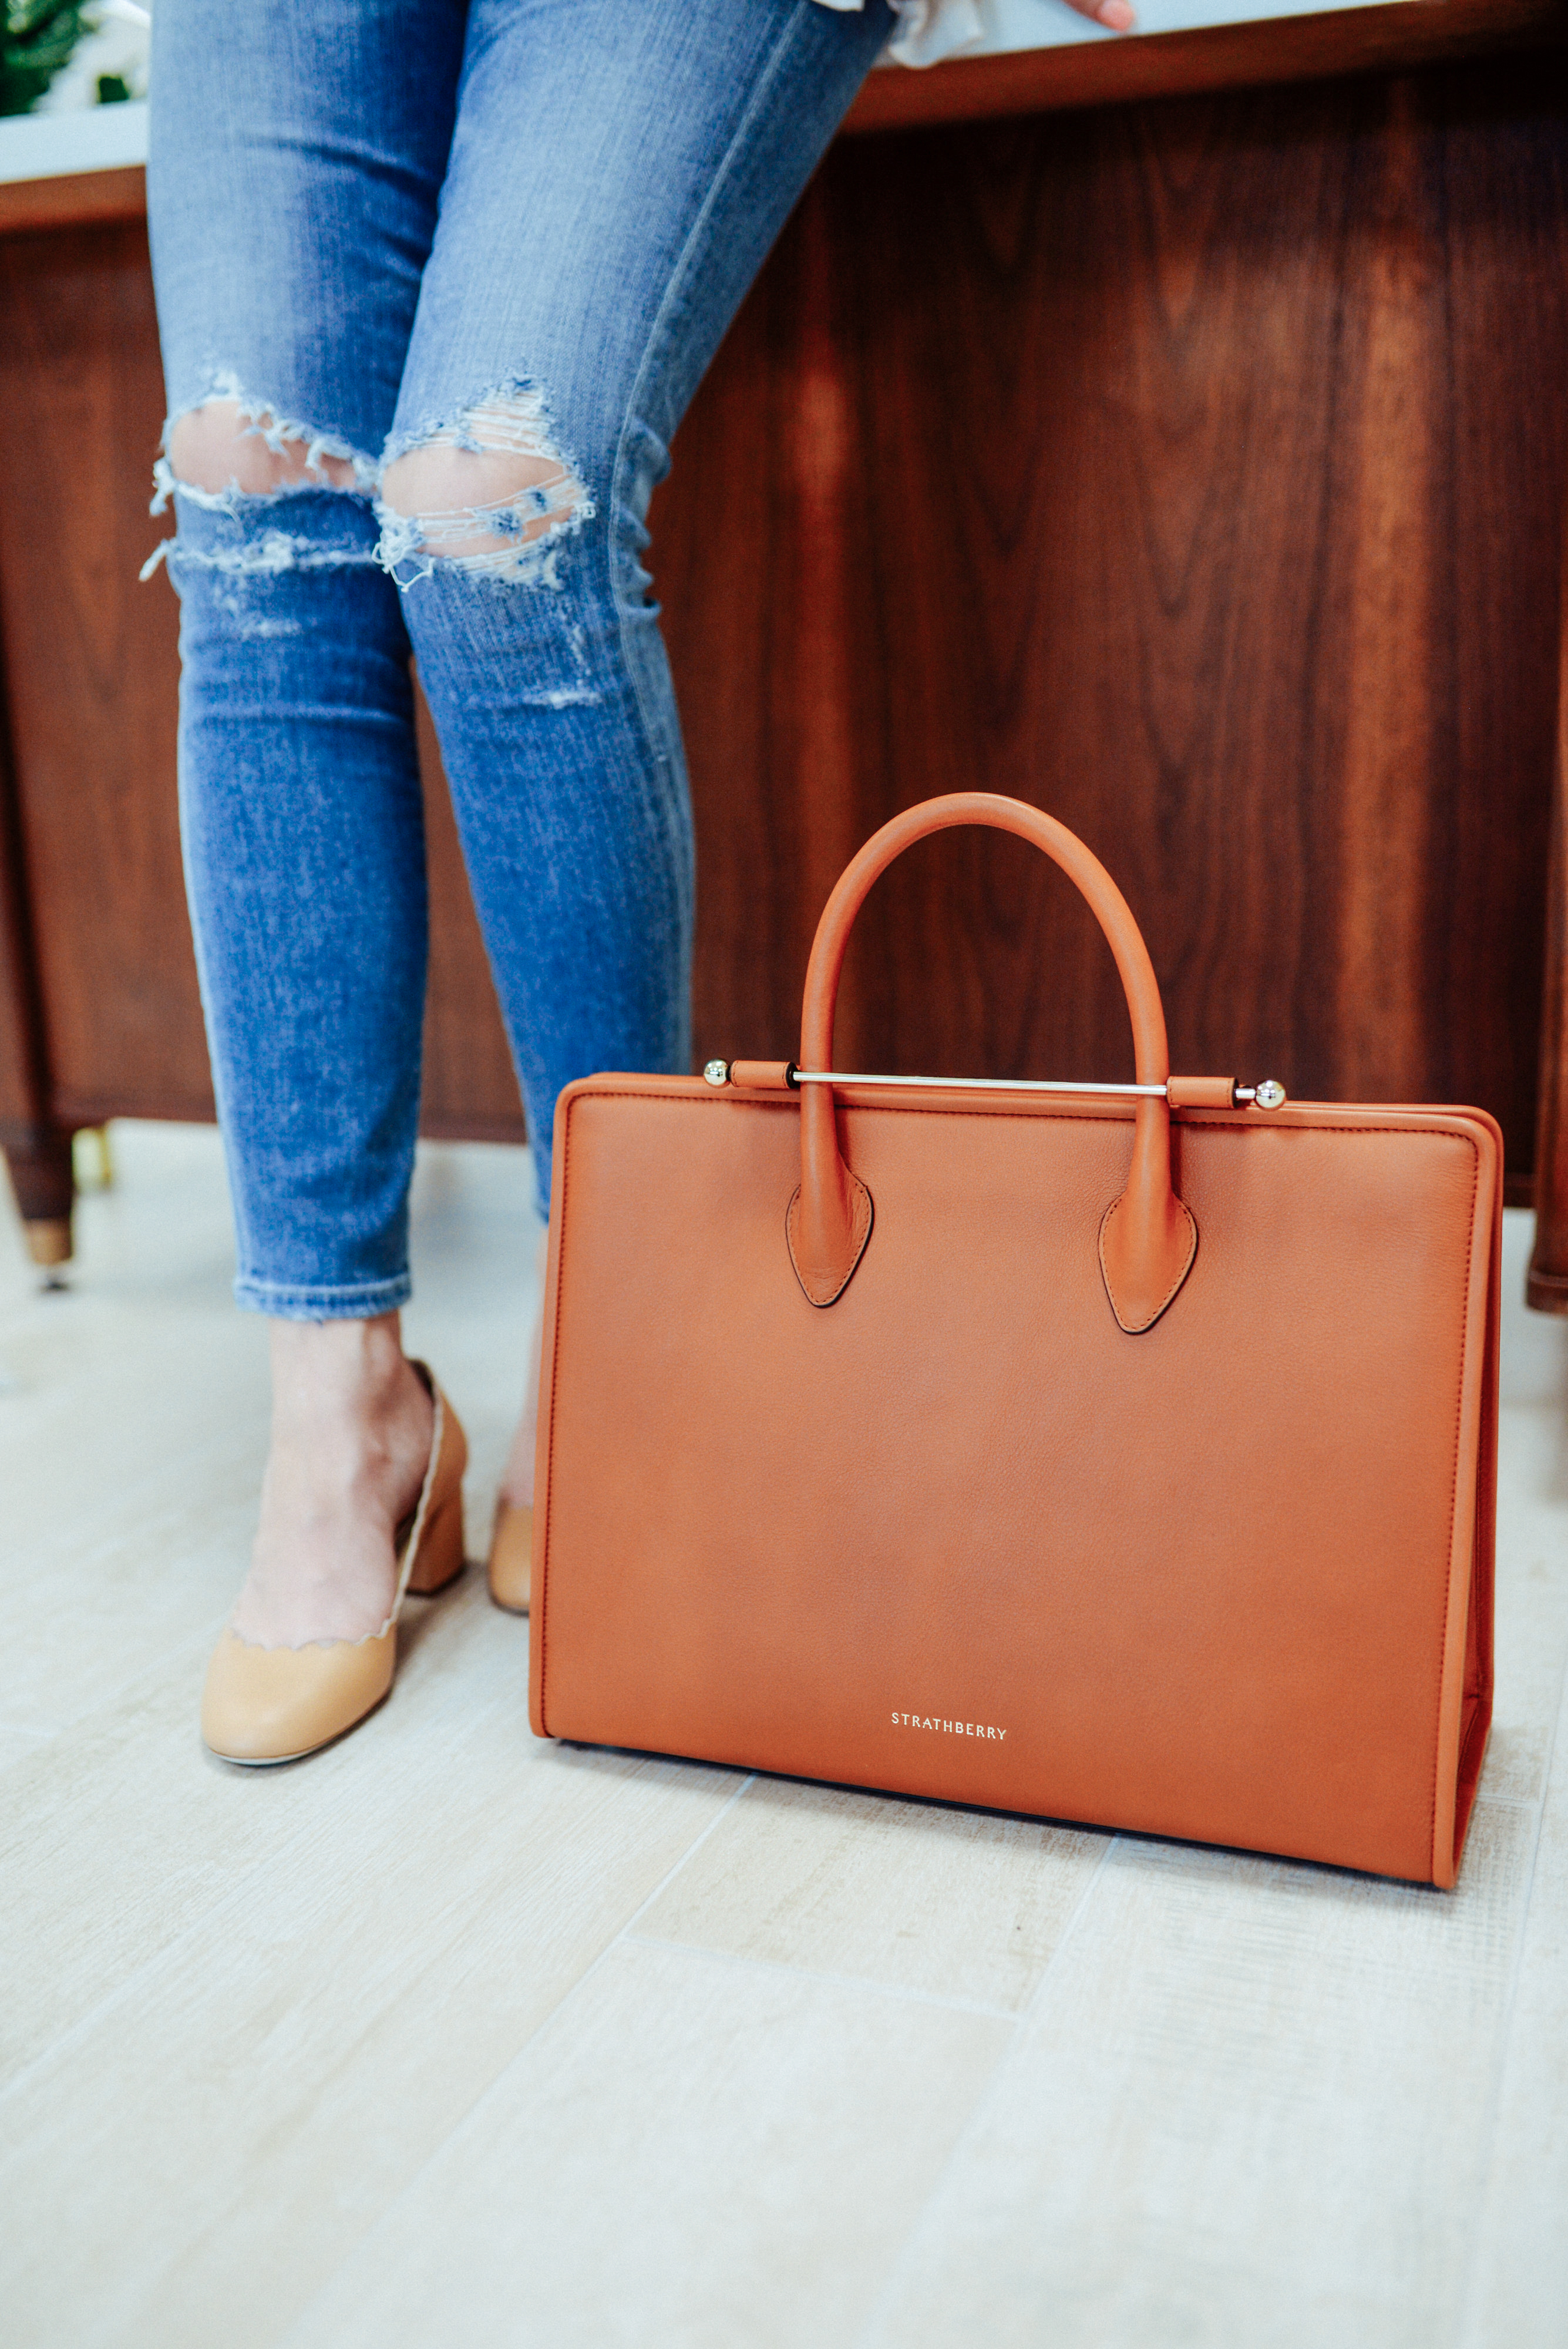 Chloe flats and Strathberry bag